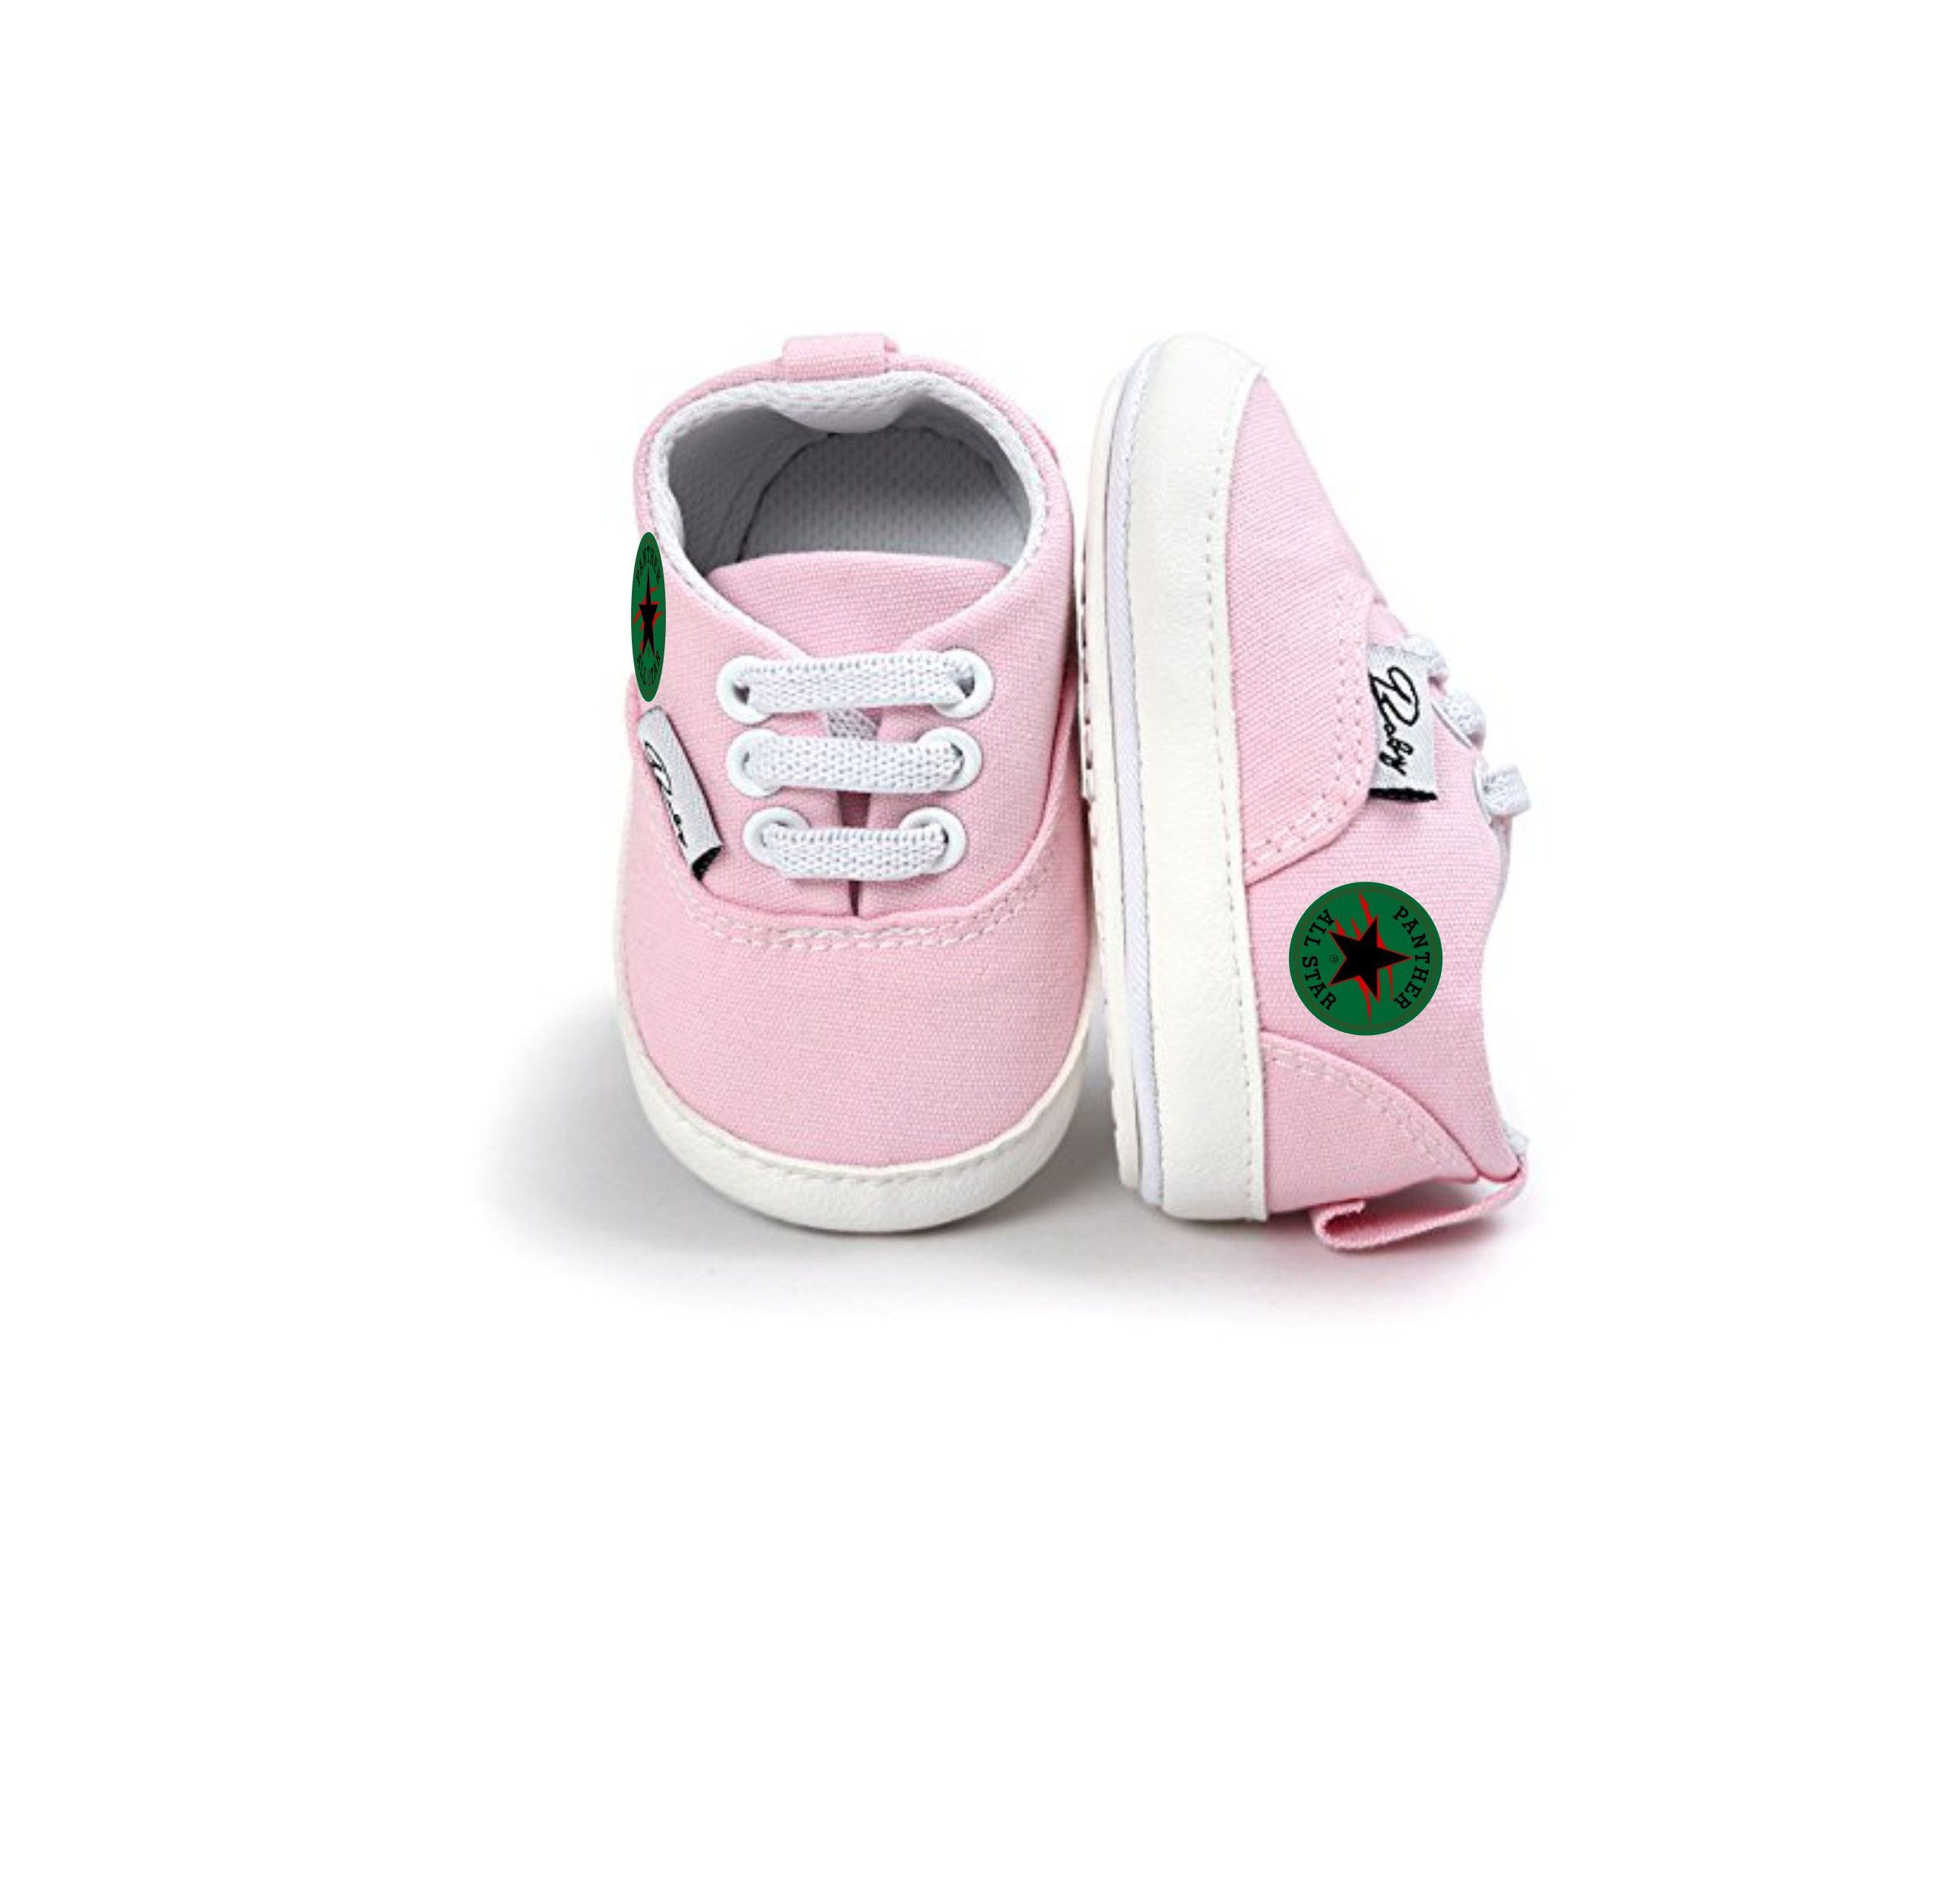 d246fb873 Custom Panther All Star Non-Slip Sneaker First Walkers Shoes 0-6 Months  (Pink) by ChildishKreationz on Etsy